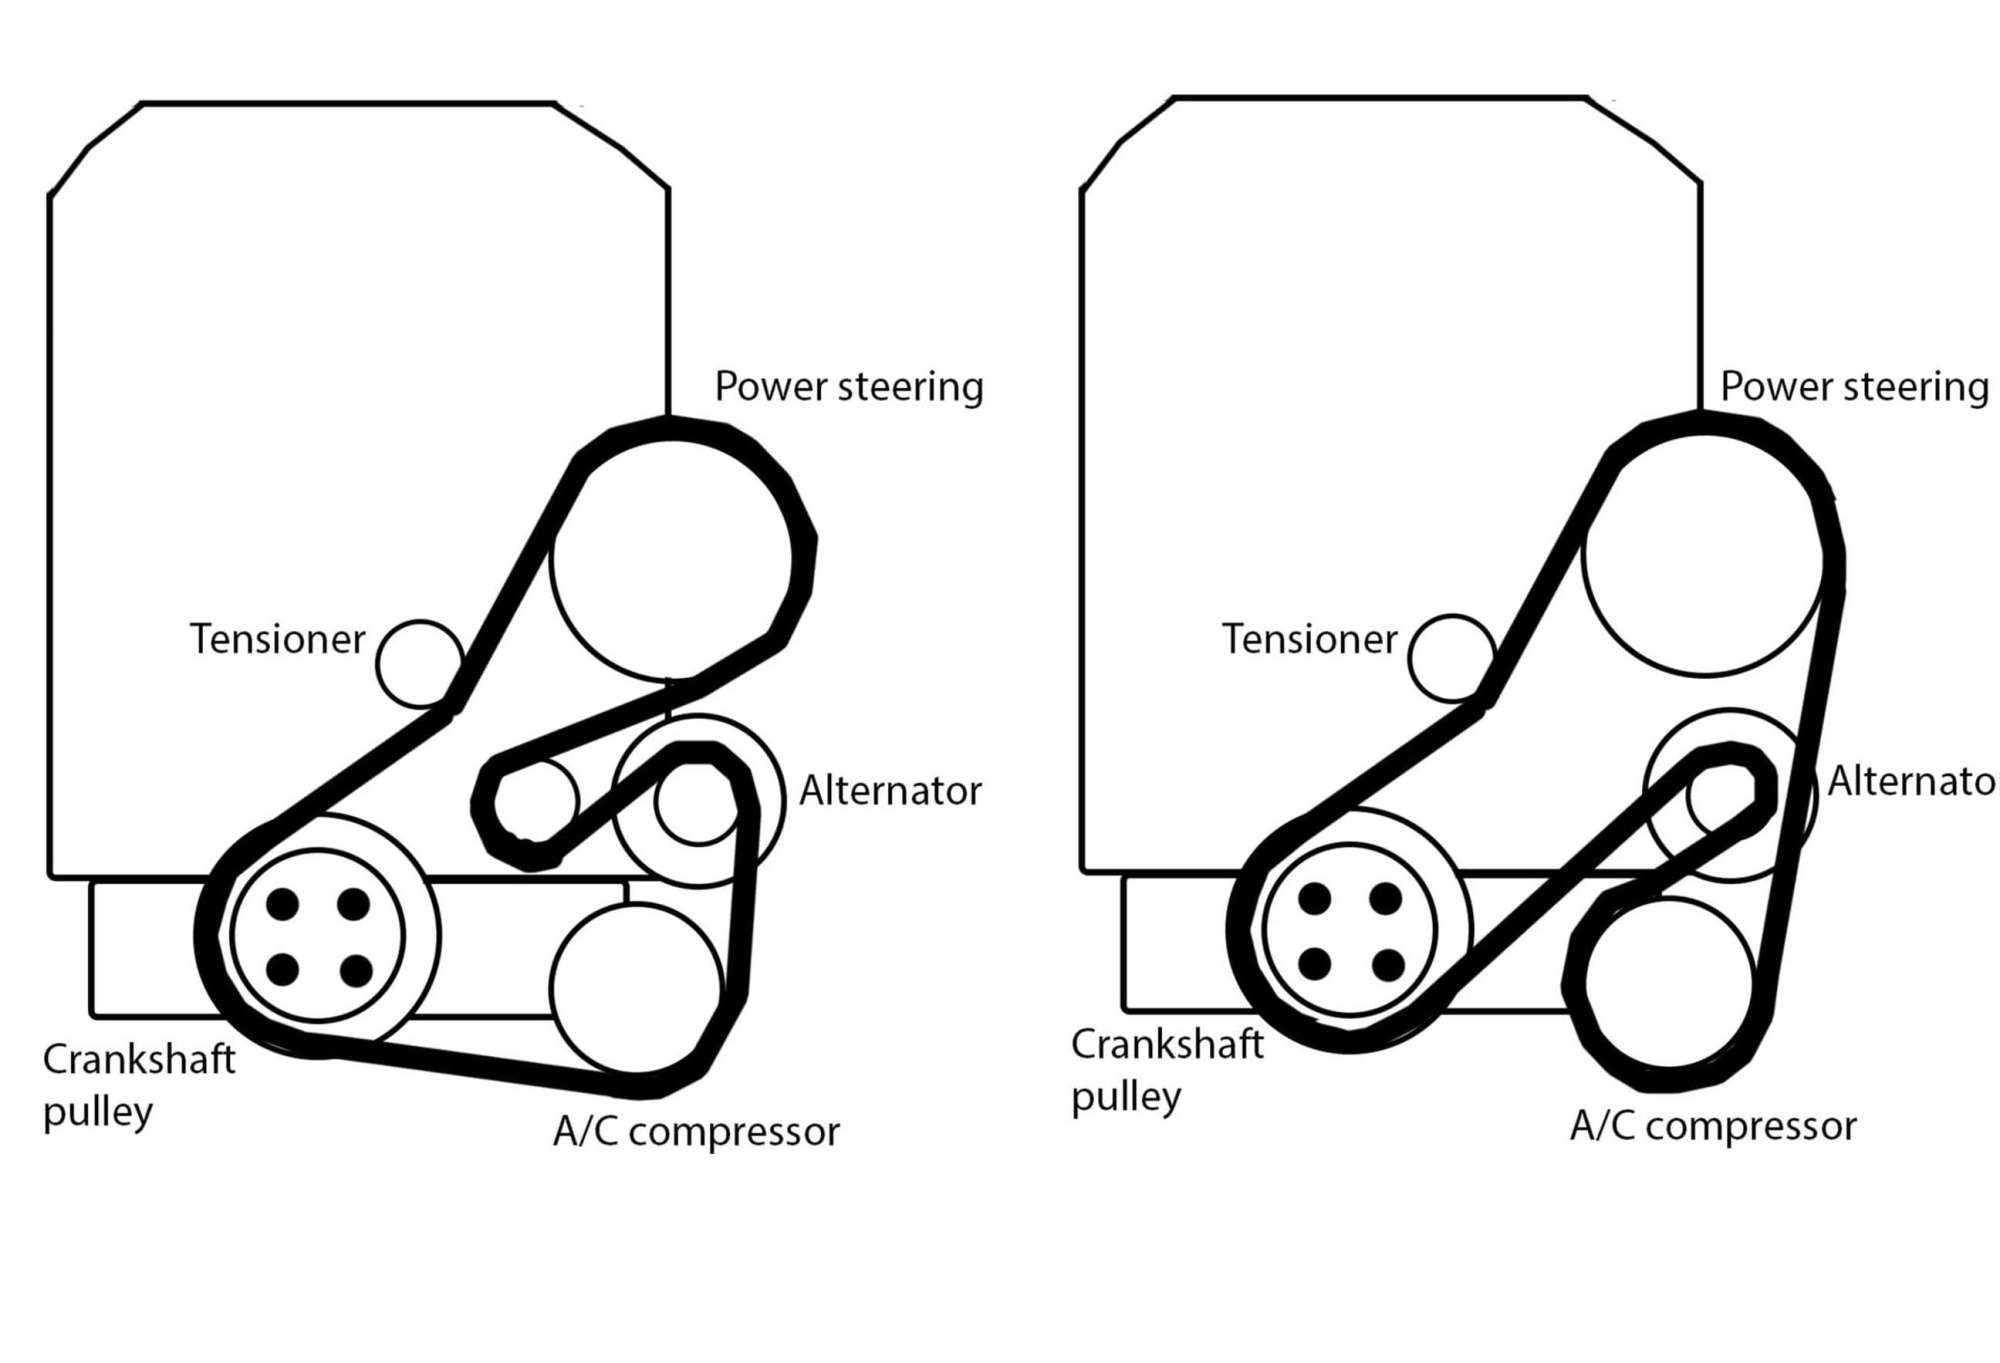 hight resolution of volvo v70 drive belt tensioner replacement v70 1998 2001 volvo s70 belt diagram i39m unable to locate a belt diagram to